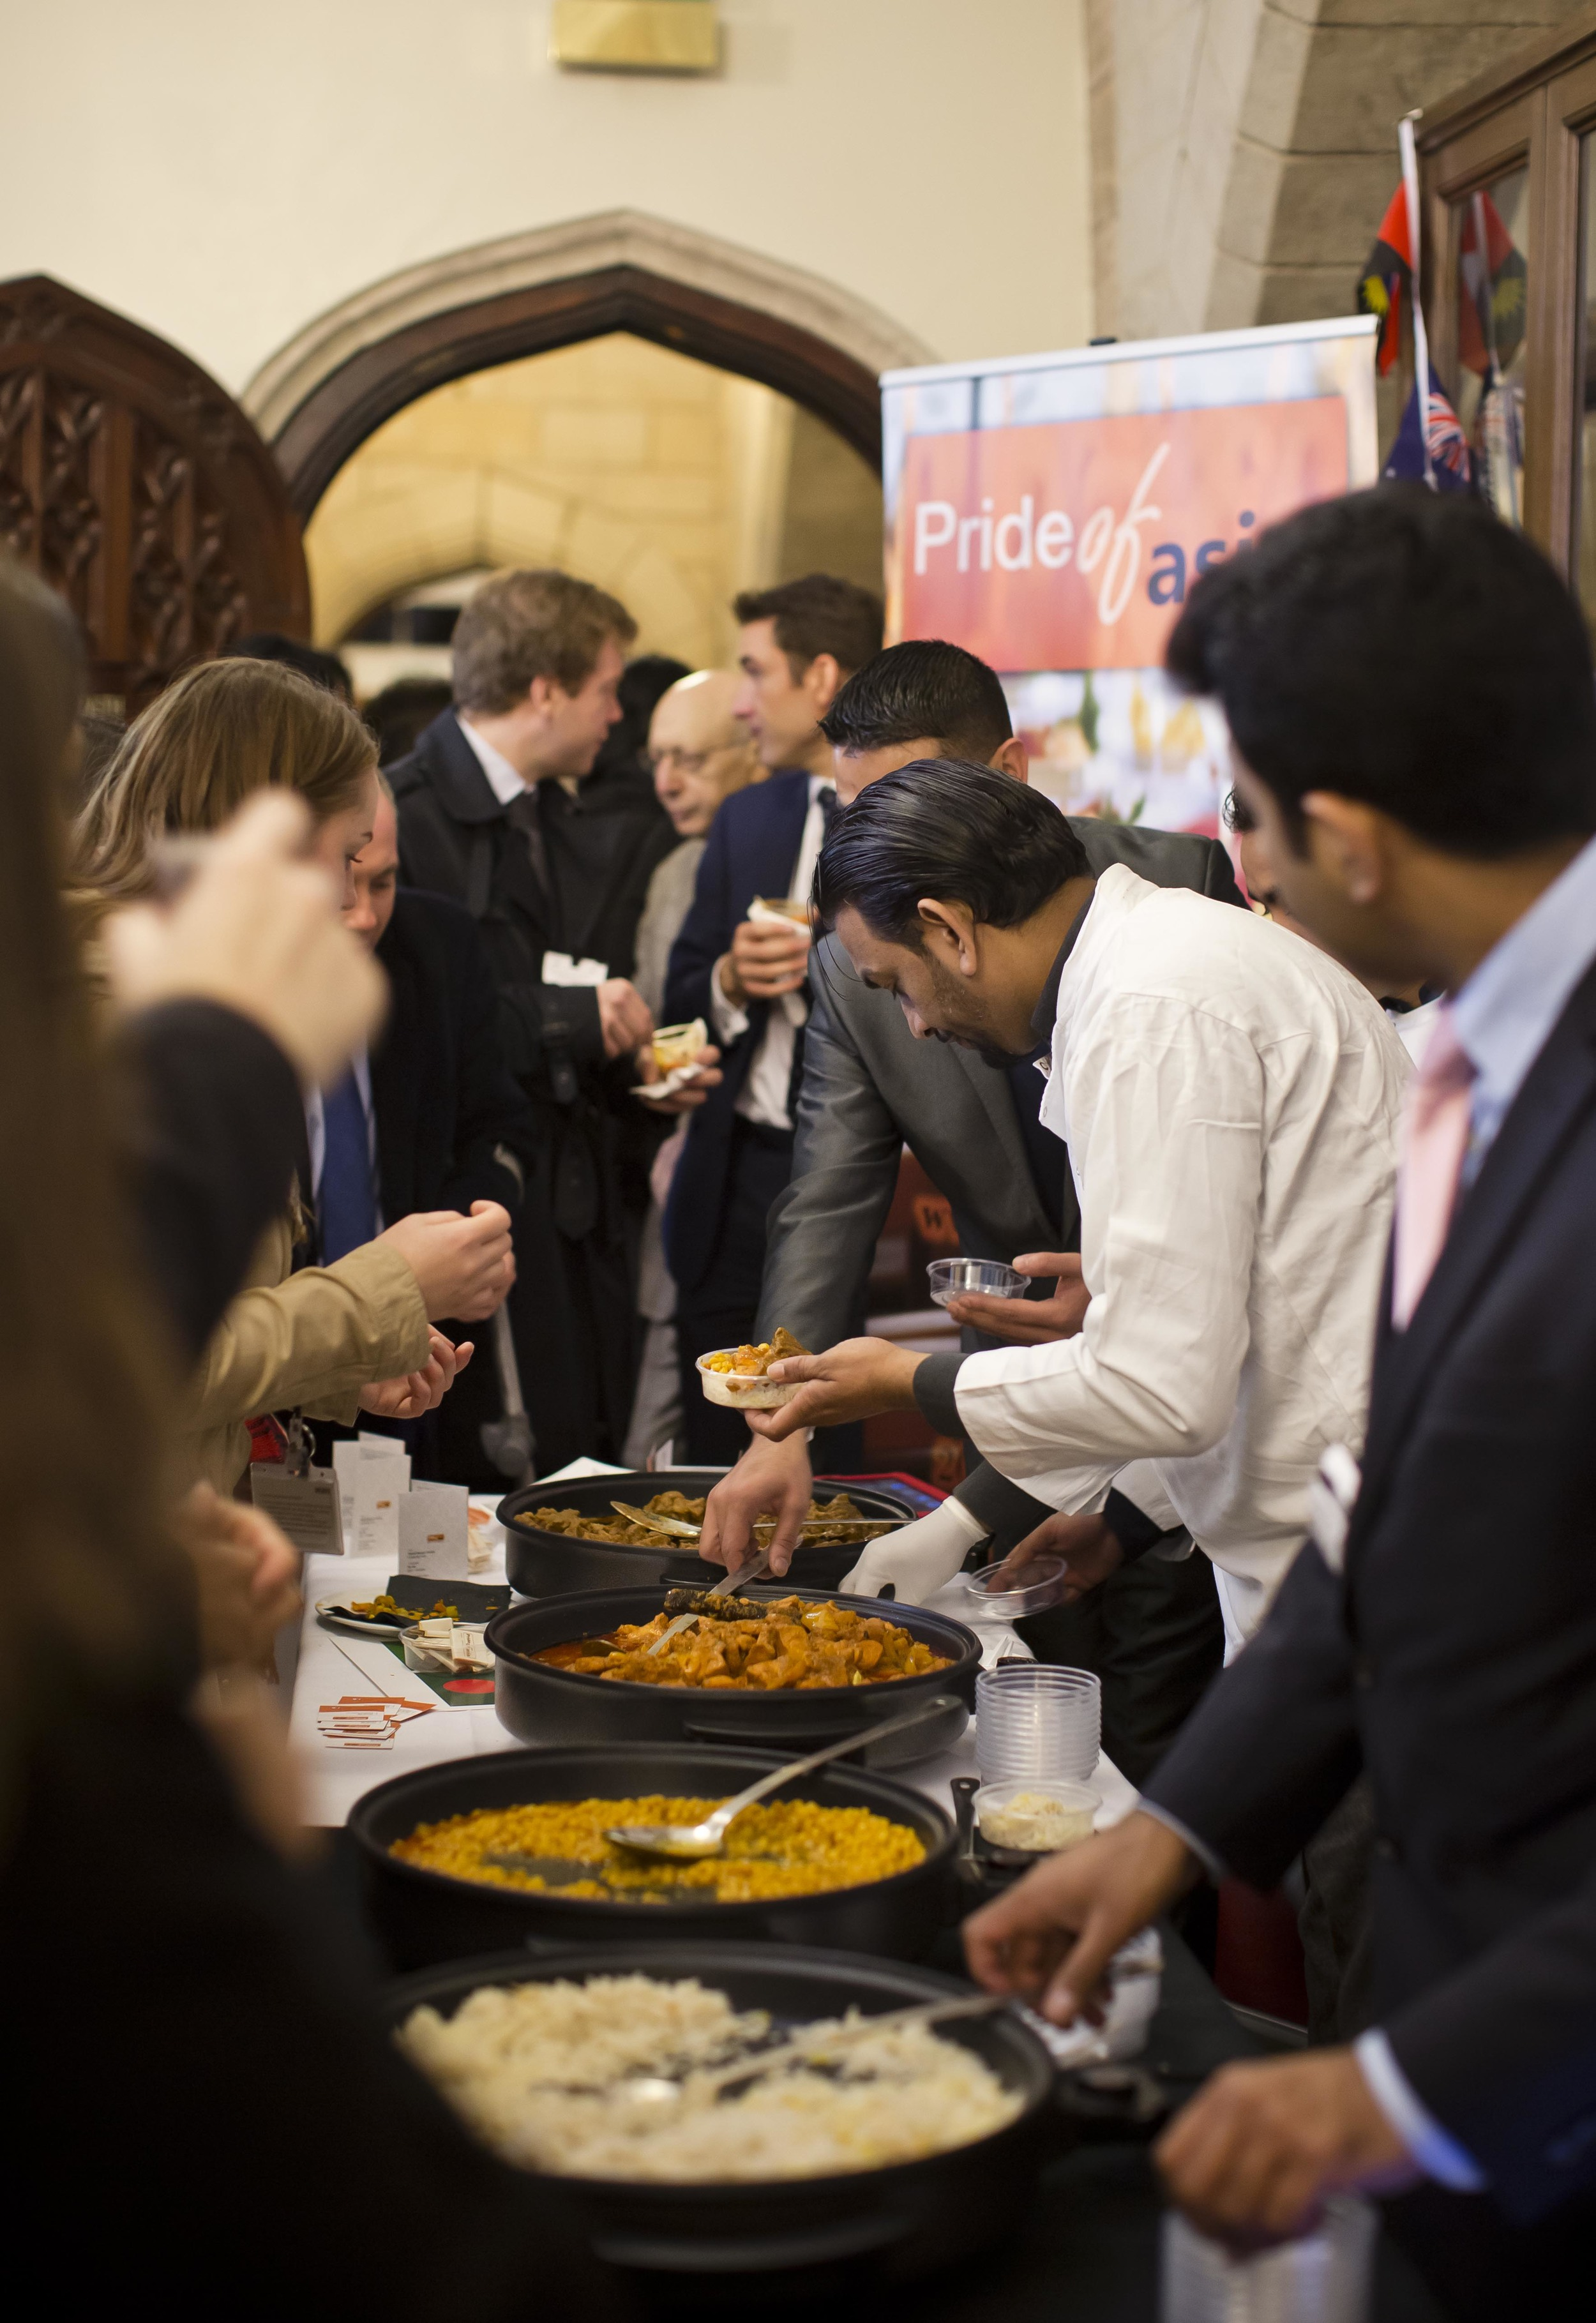 Commonwealth food event 2014-2637.jpg